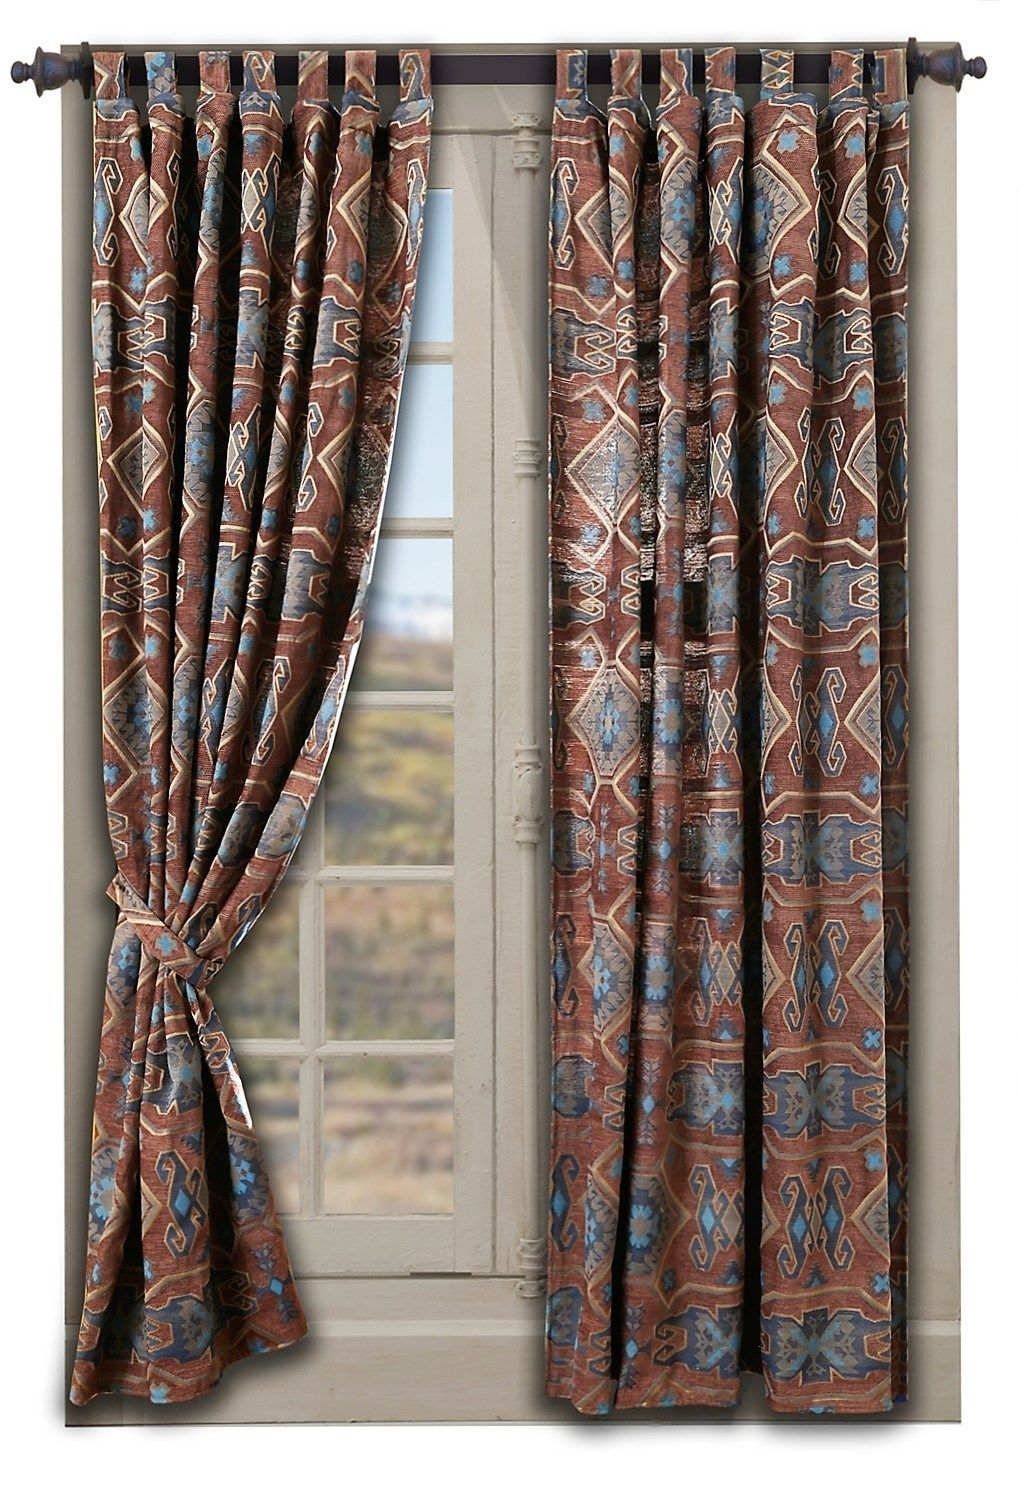 Southwestern Curtains In Native American Patterns Southwestern Curtains Curtains Drapes Curtains #western #living #room #curtains